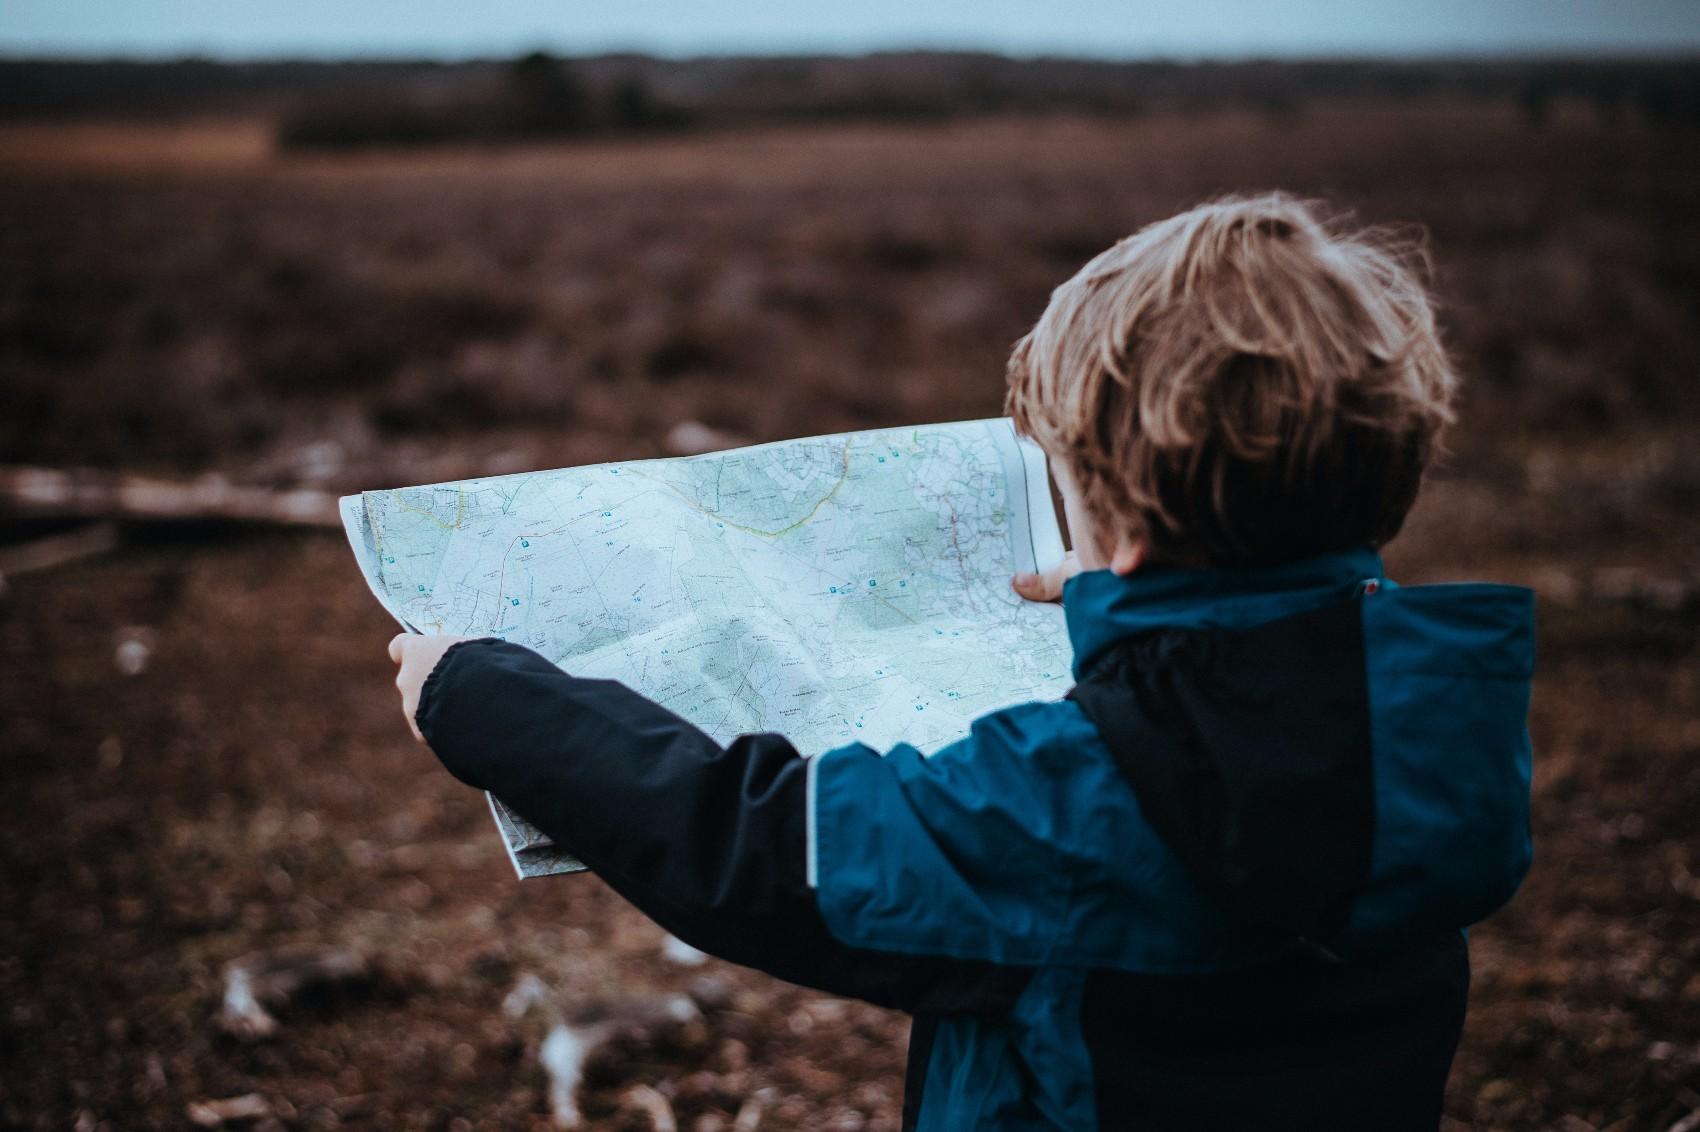 kids navigating learning travelling engaged